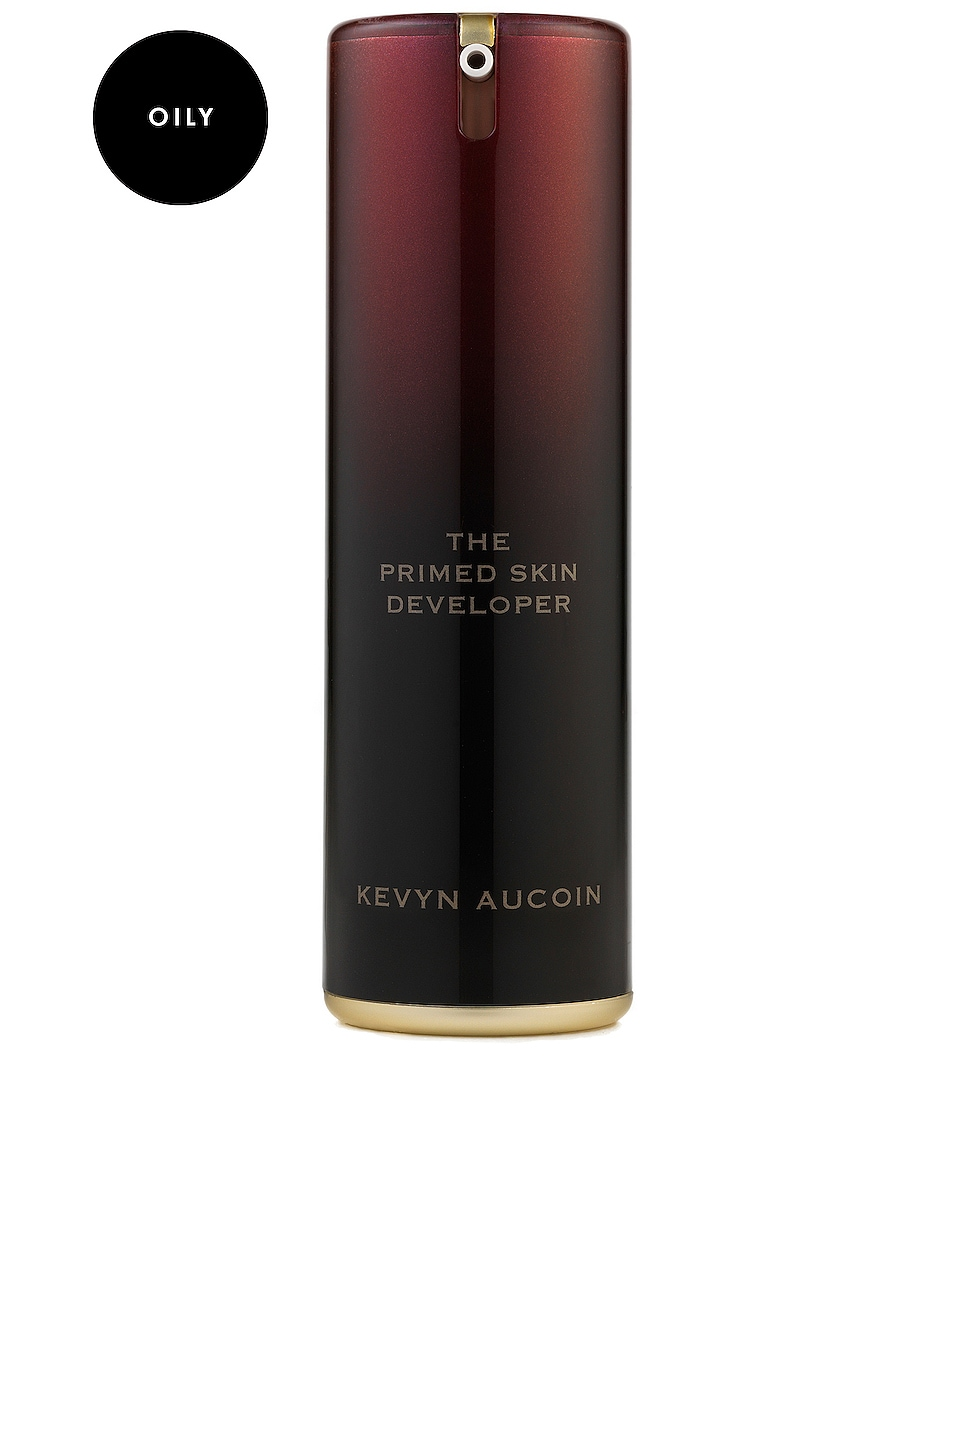 Kevyn Aucoin The Primed Skin Developer in Normal to Oily Skin